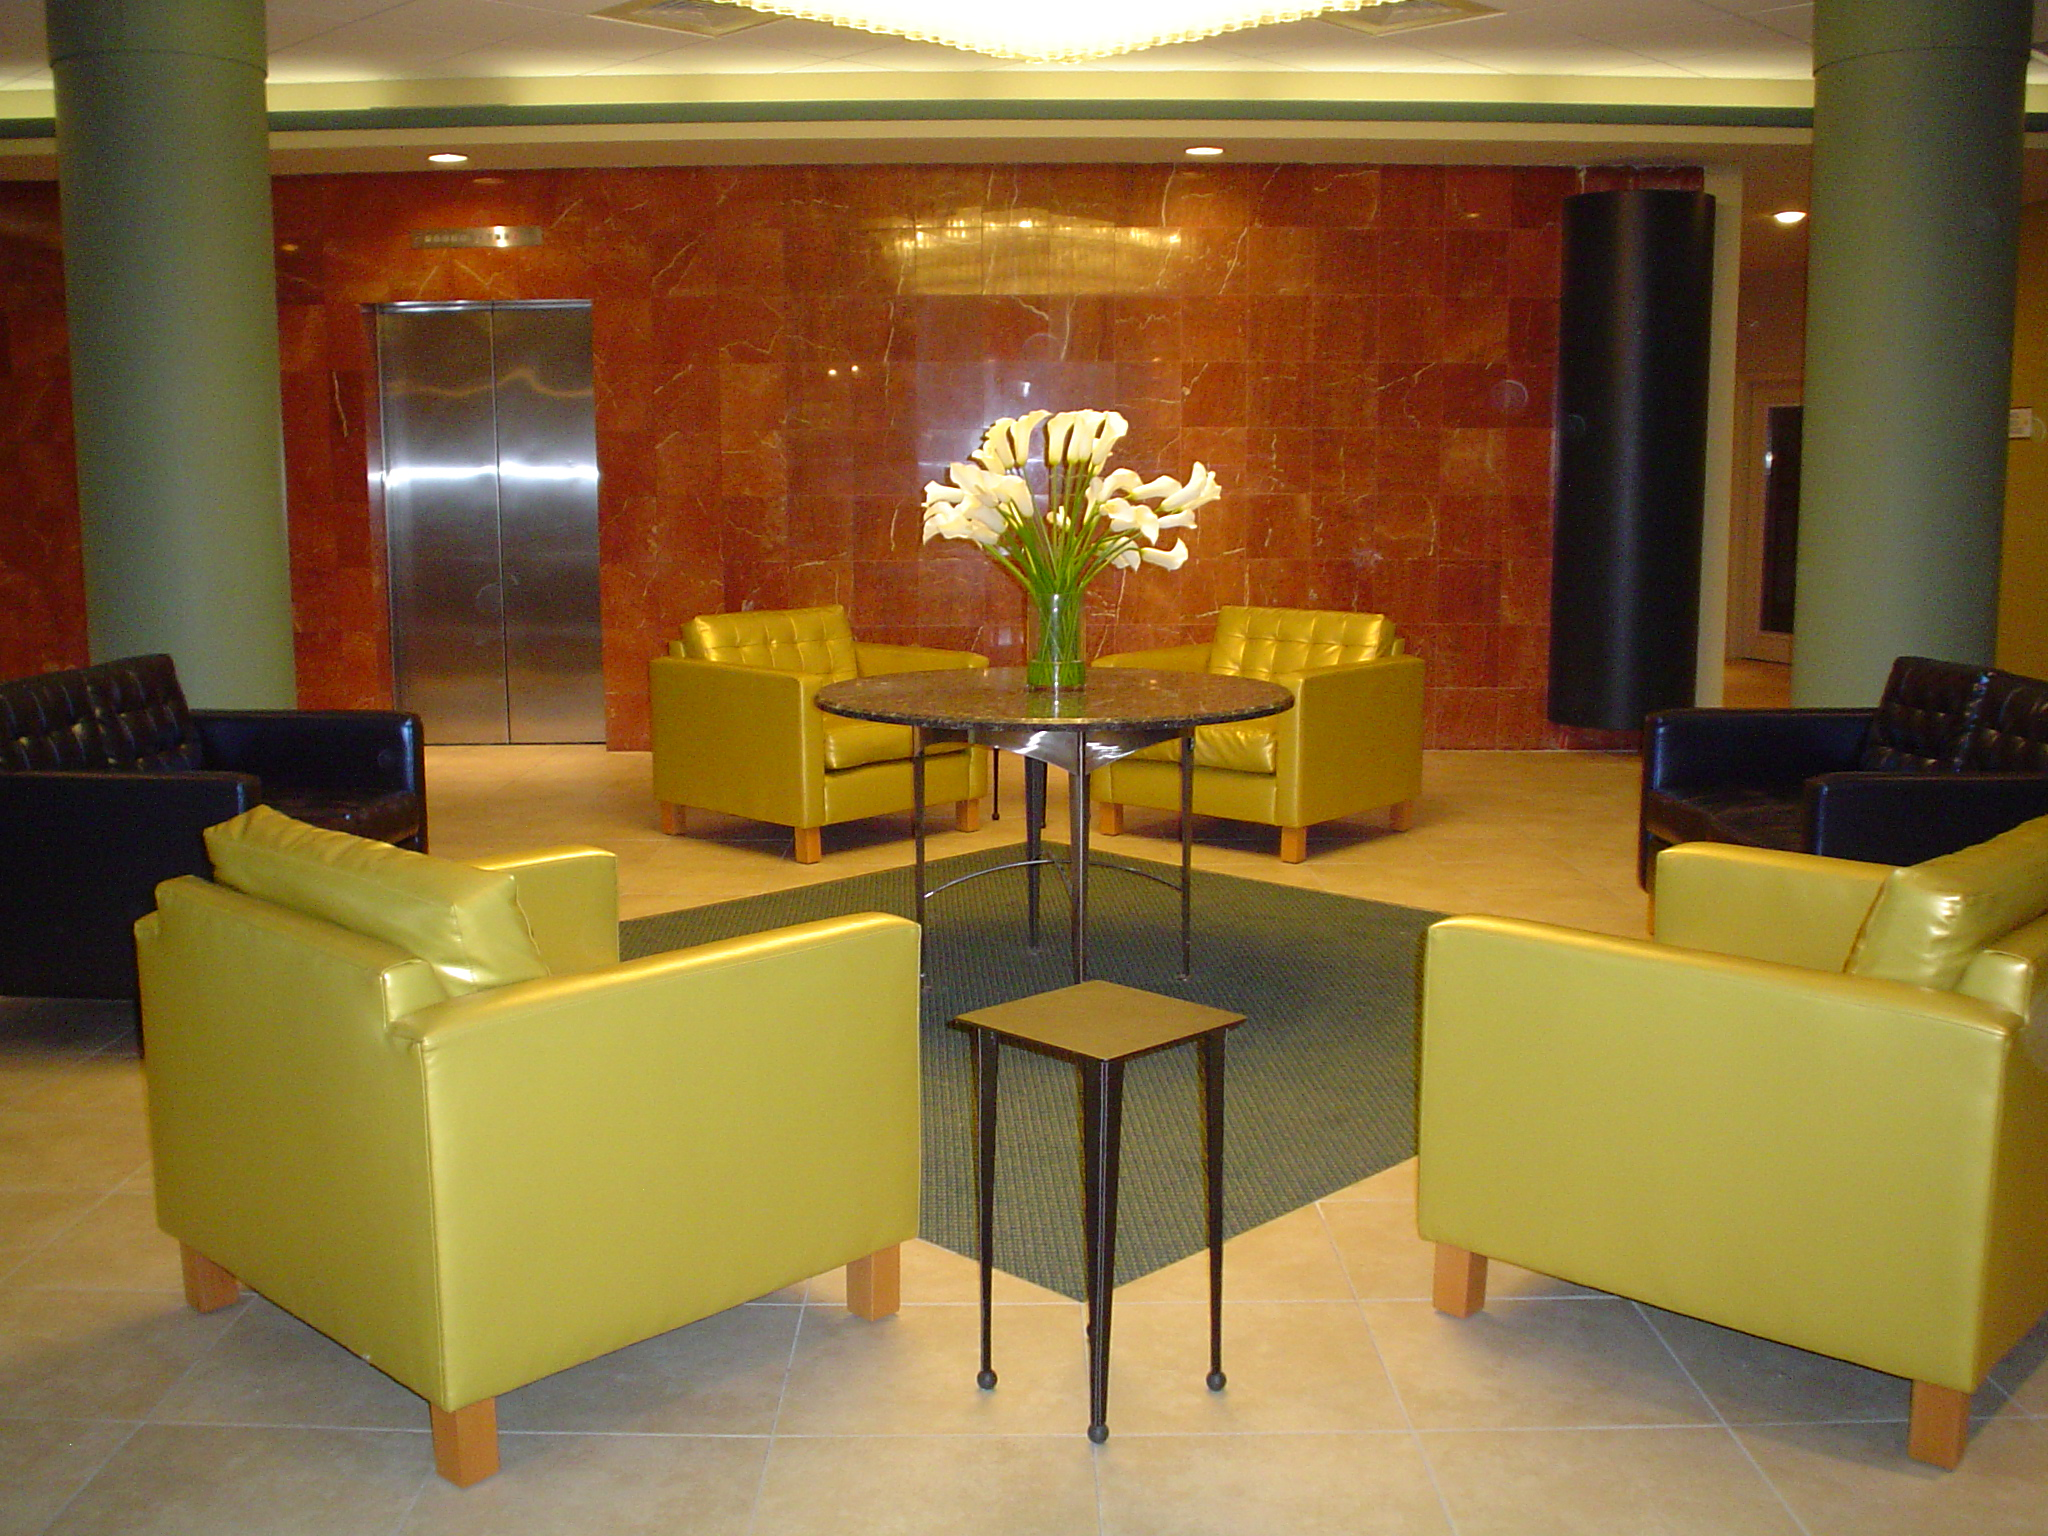 DSC04117 Daytona Beach Regency COMMON AREAS Lobby